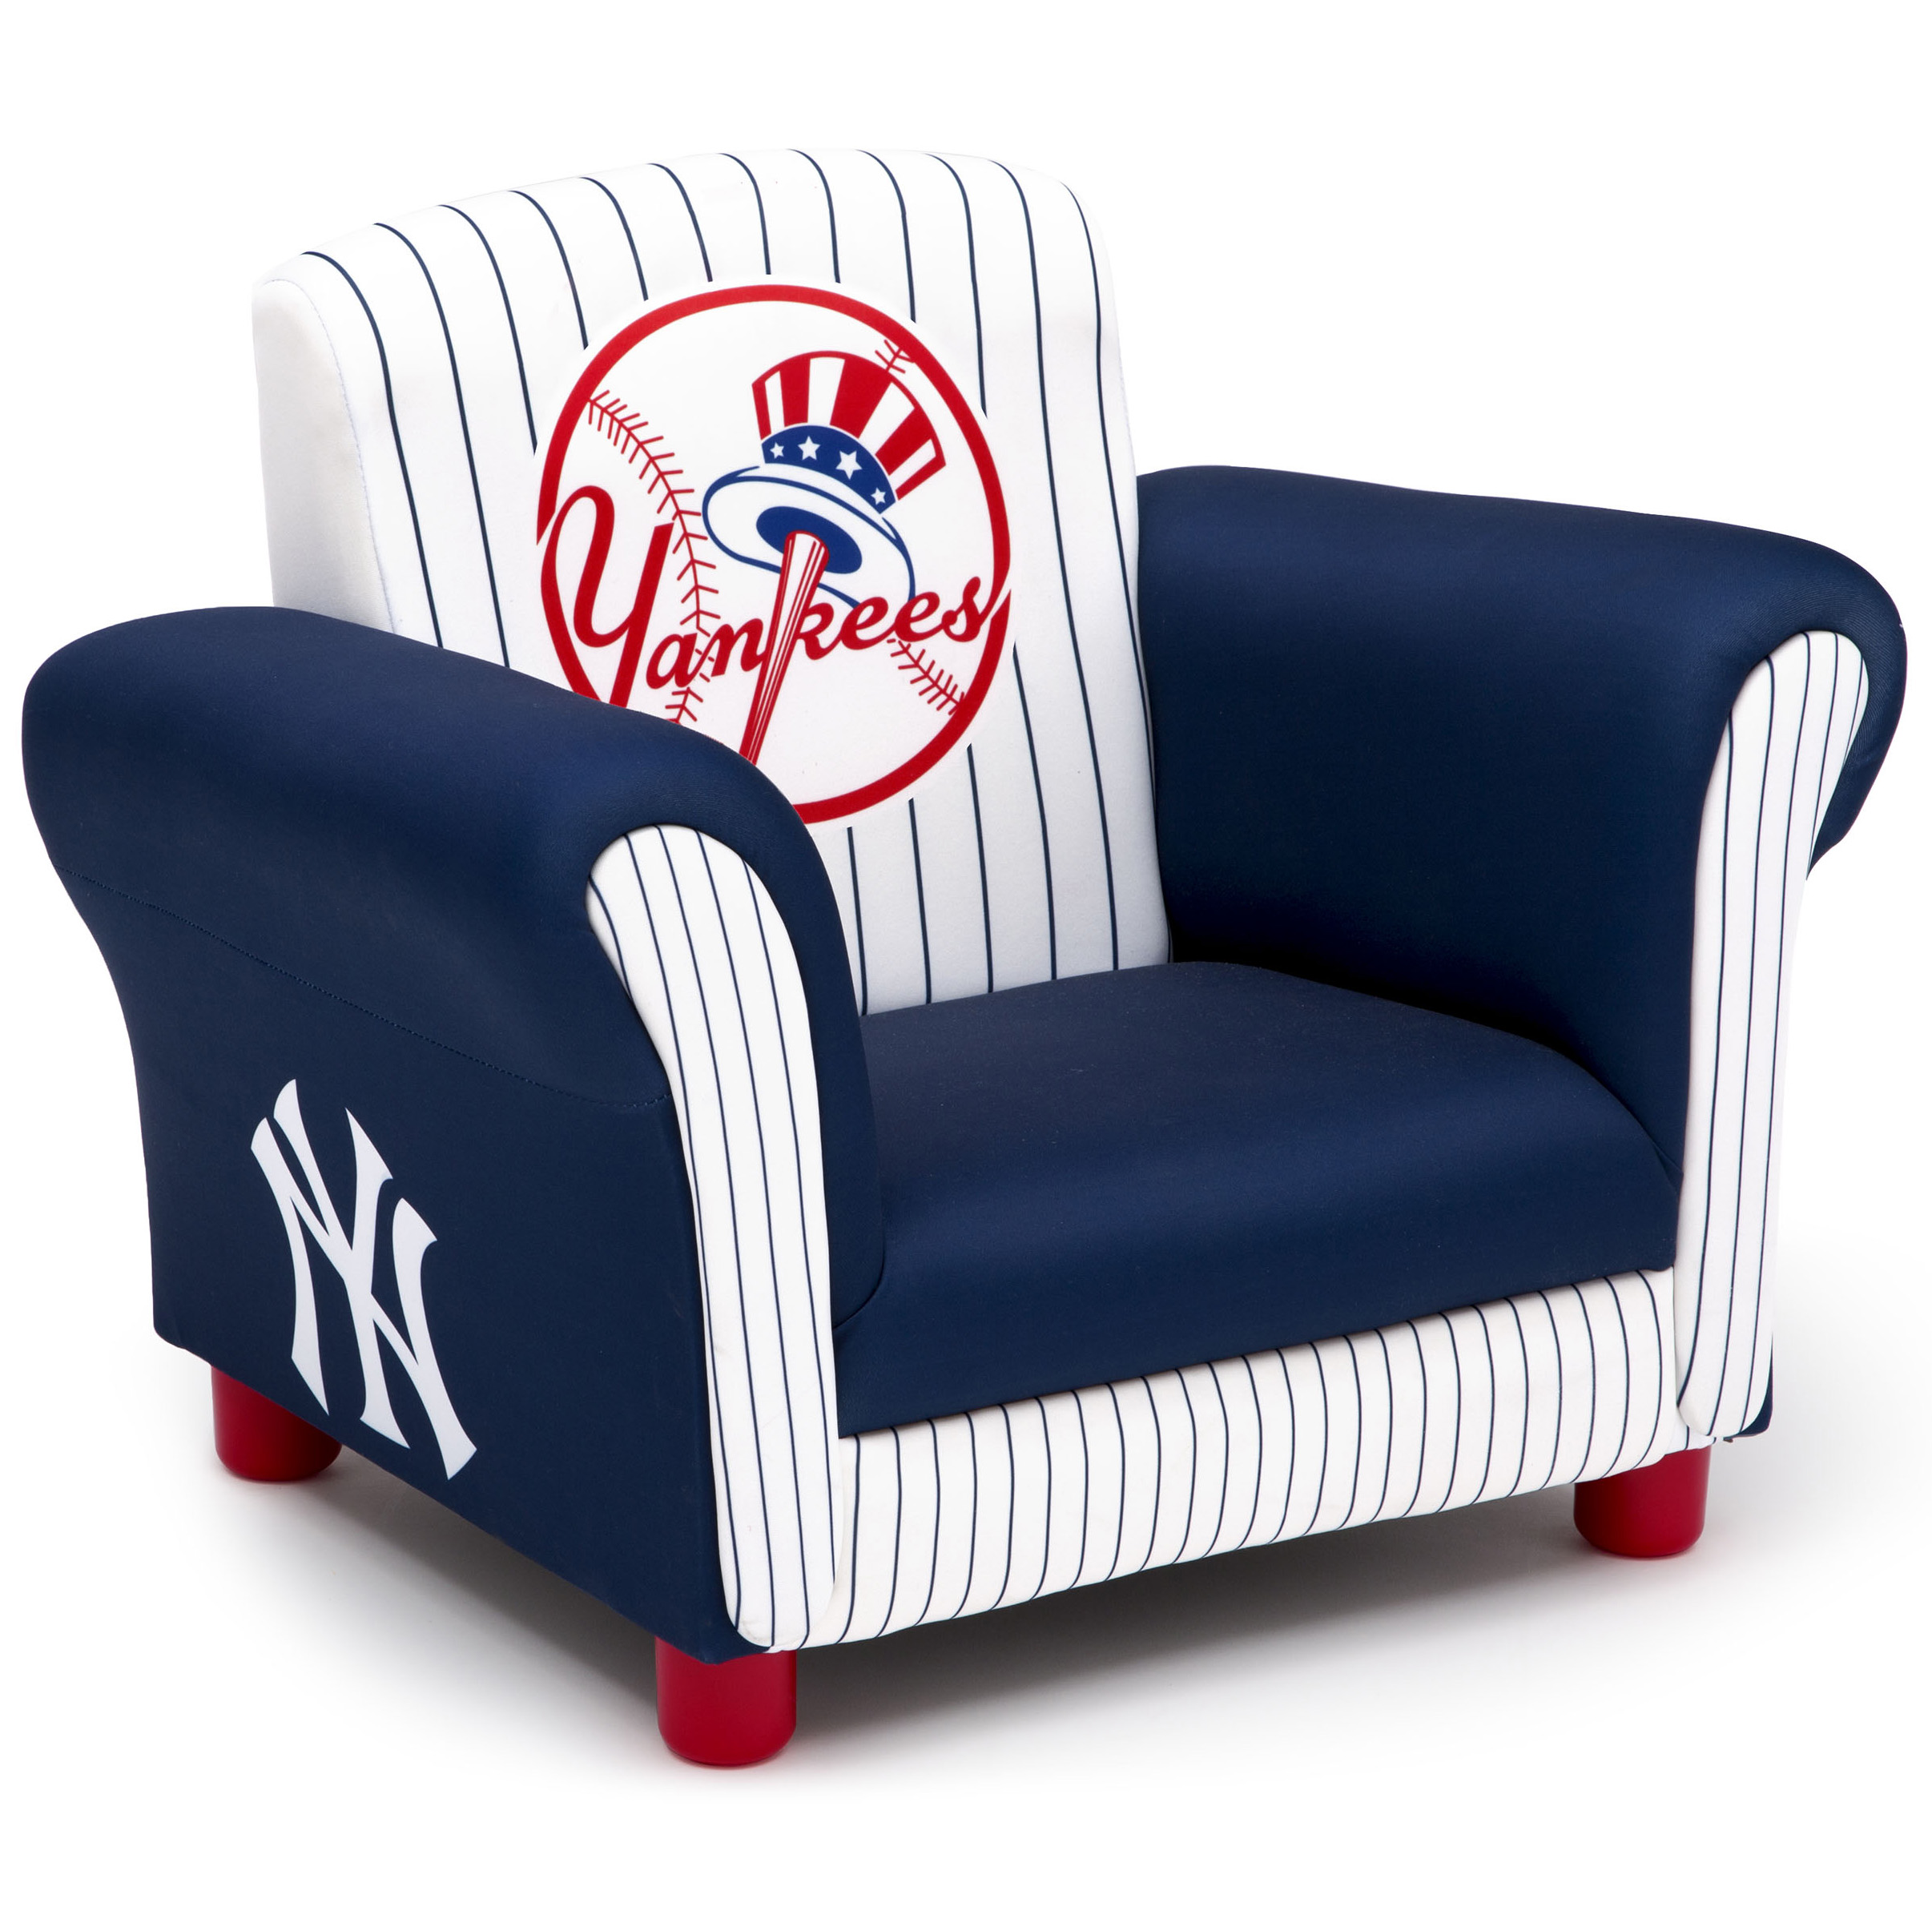 New York Yankees Kids Upholstered Chair